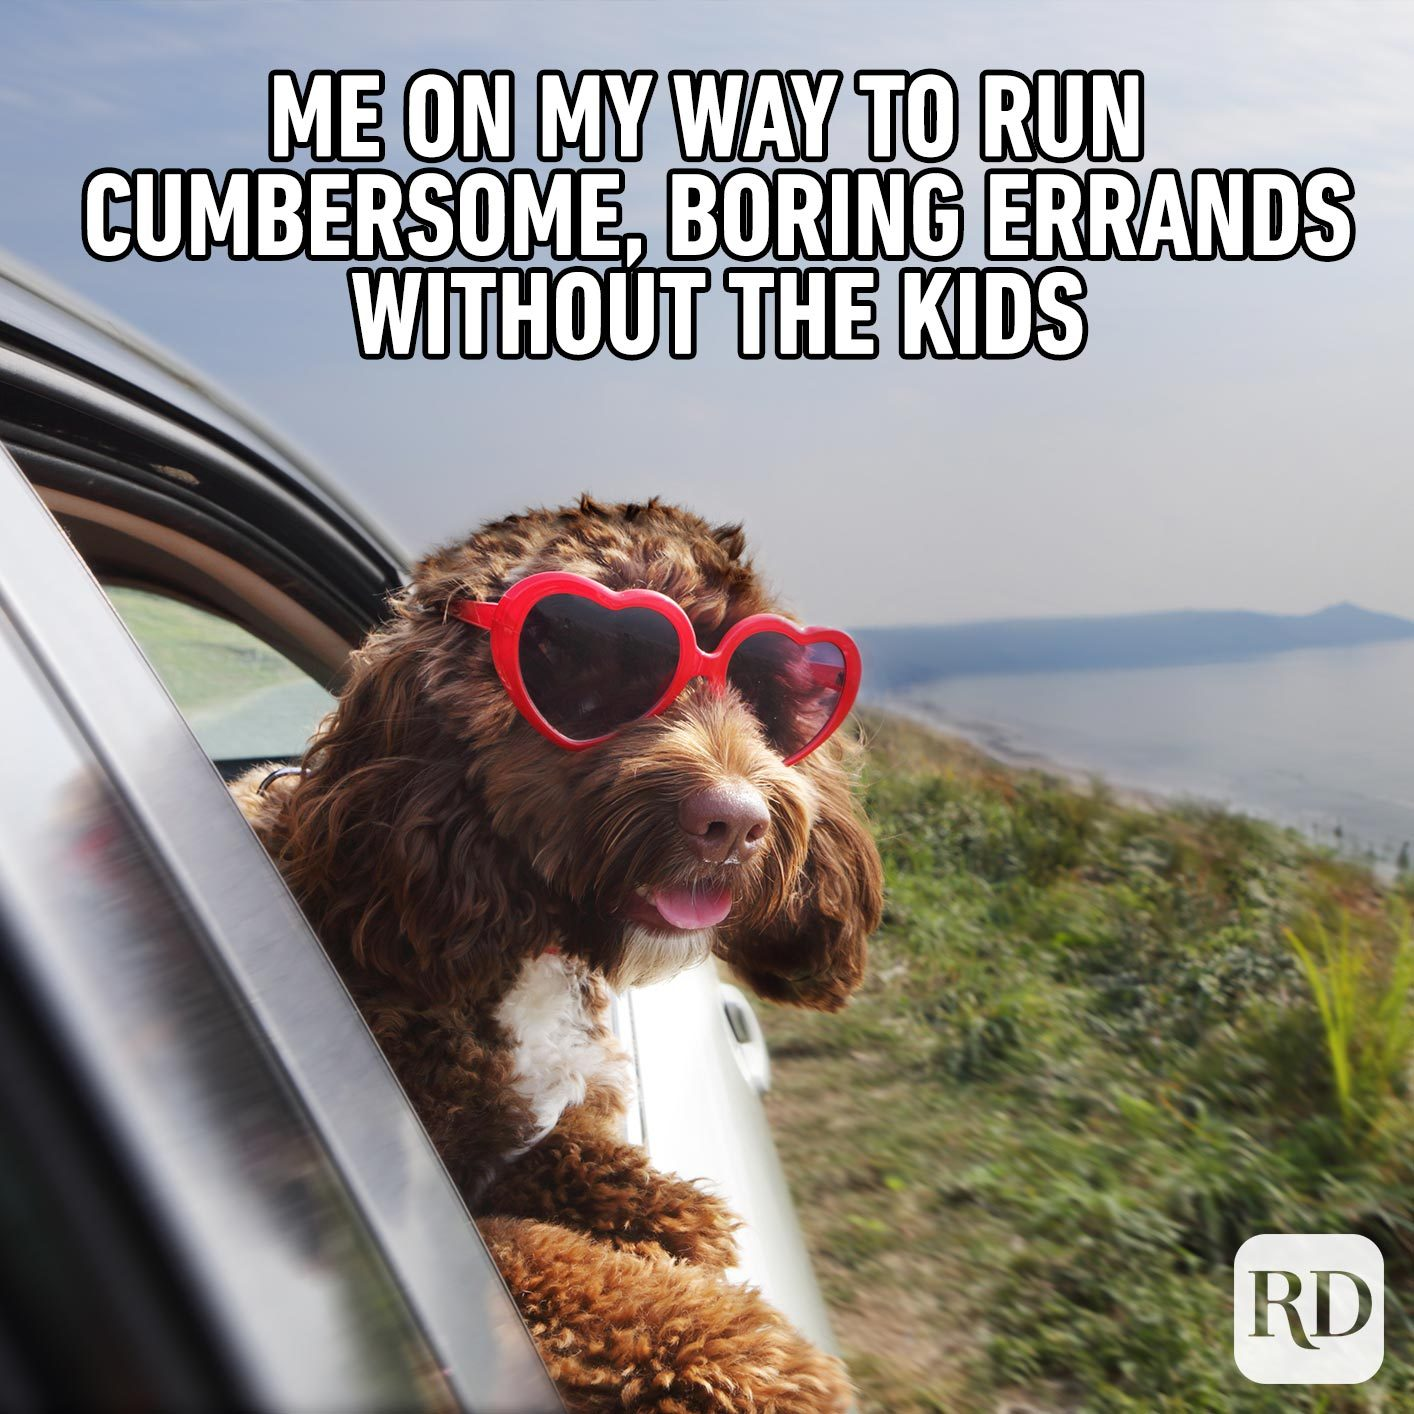 Dog sticking head out window. MEME TEXT: Me on my way to run cumbersome, boring errands without the kids